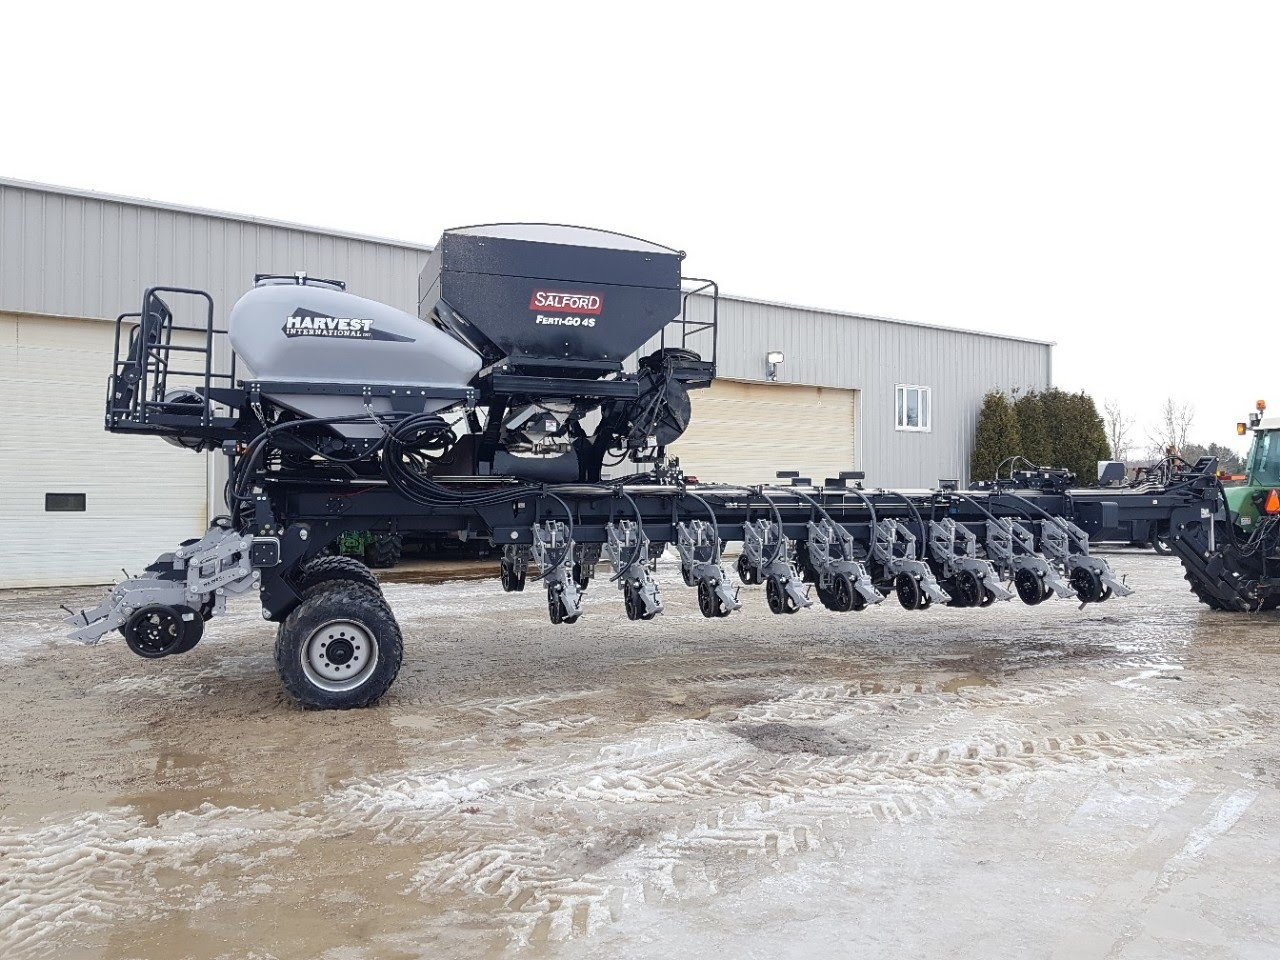 Harvest International 24 Row Corn Planter Equipped with Liquid and Dry Fertilizer